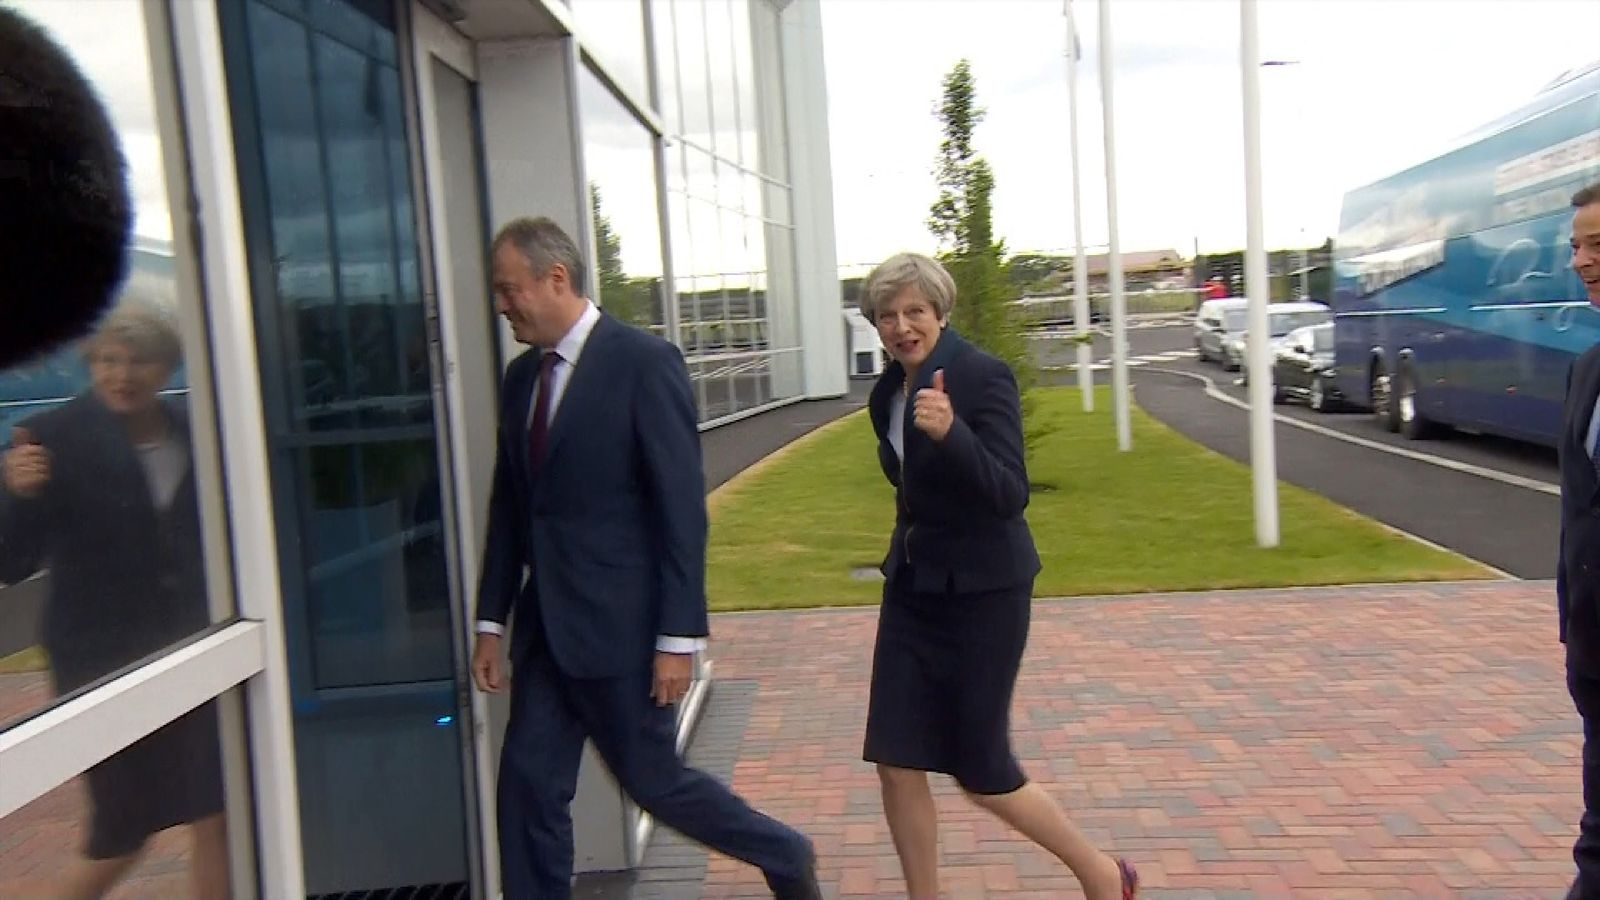 Theresa May is confident about a Conservative Party manifesto